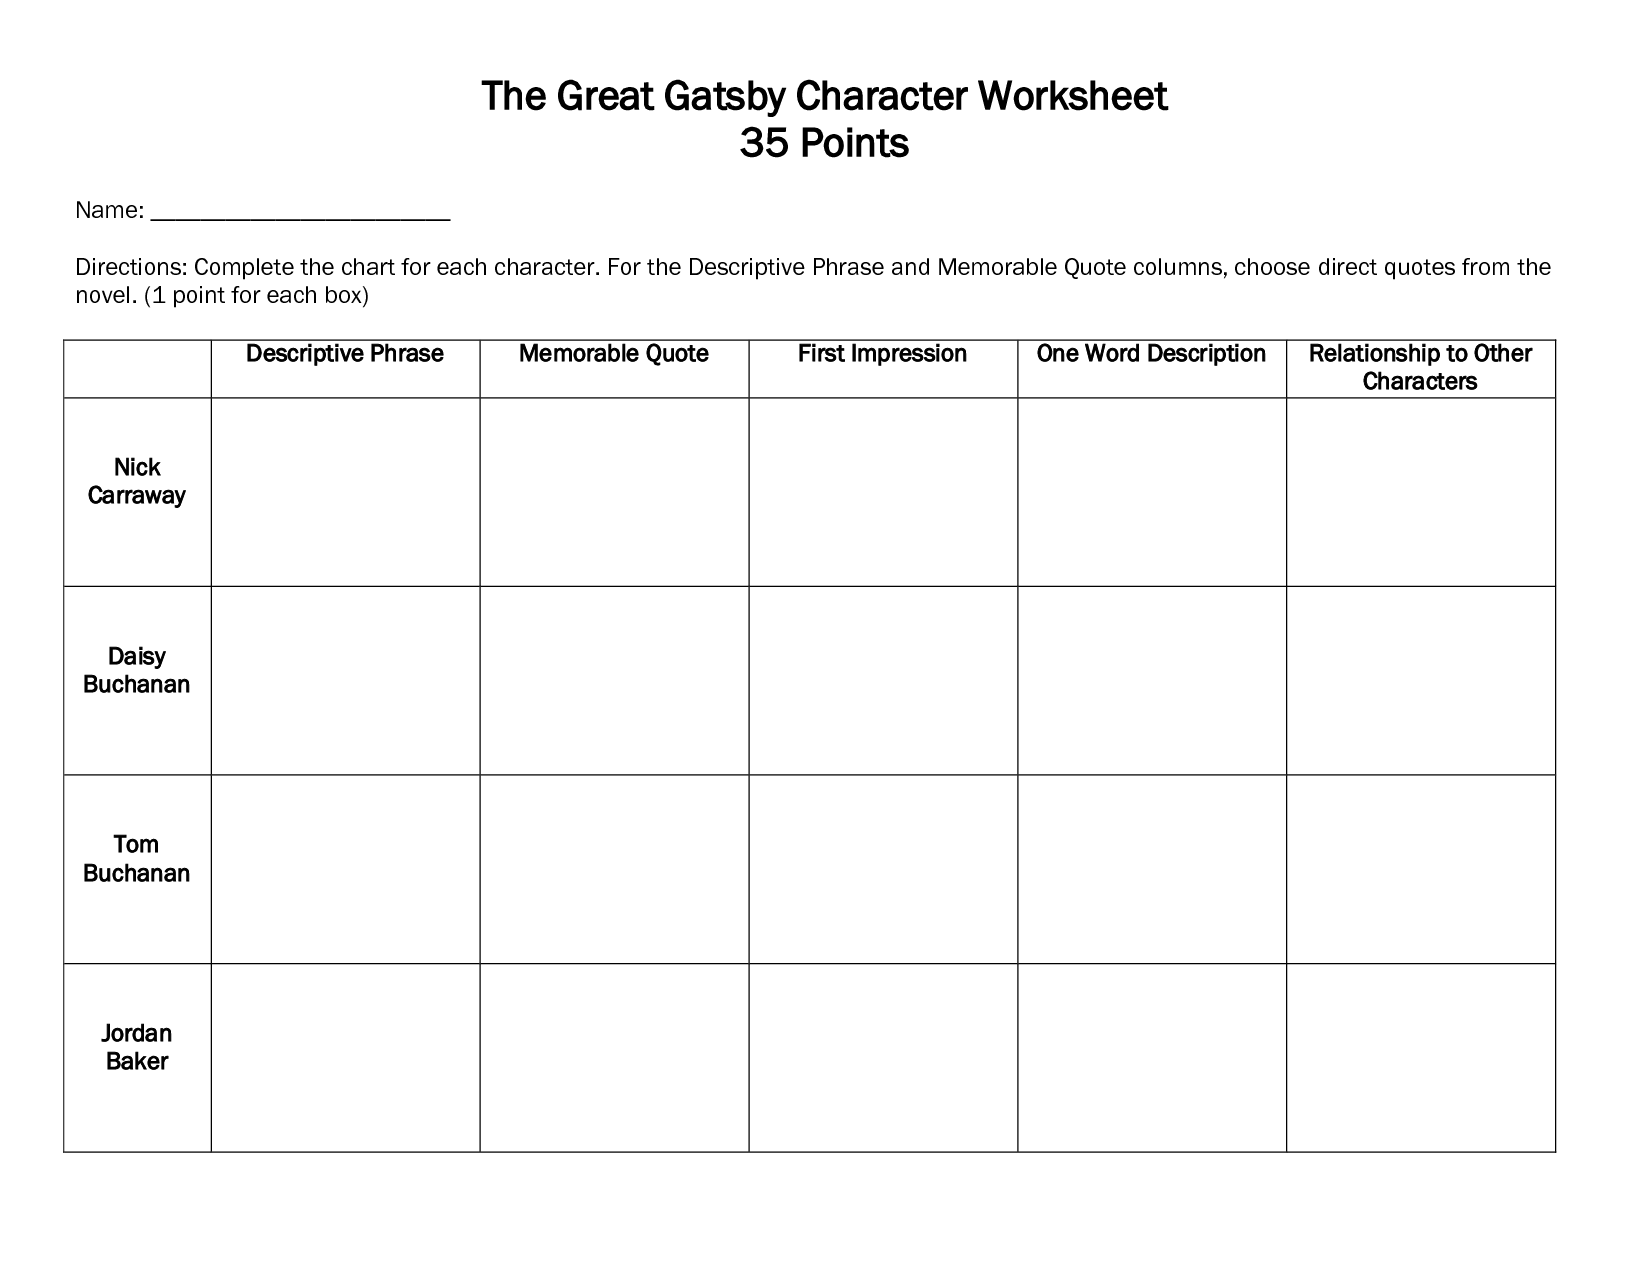 worksheets for great gatsby the great gatsby mind map activities worksheets for great gatsby the great gatsby character worksheet 35 points directions